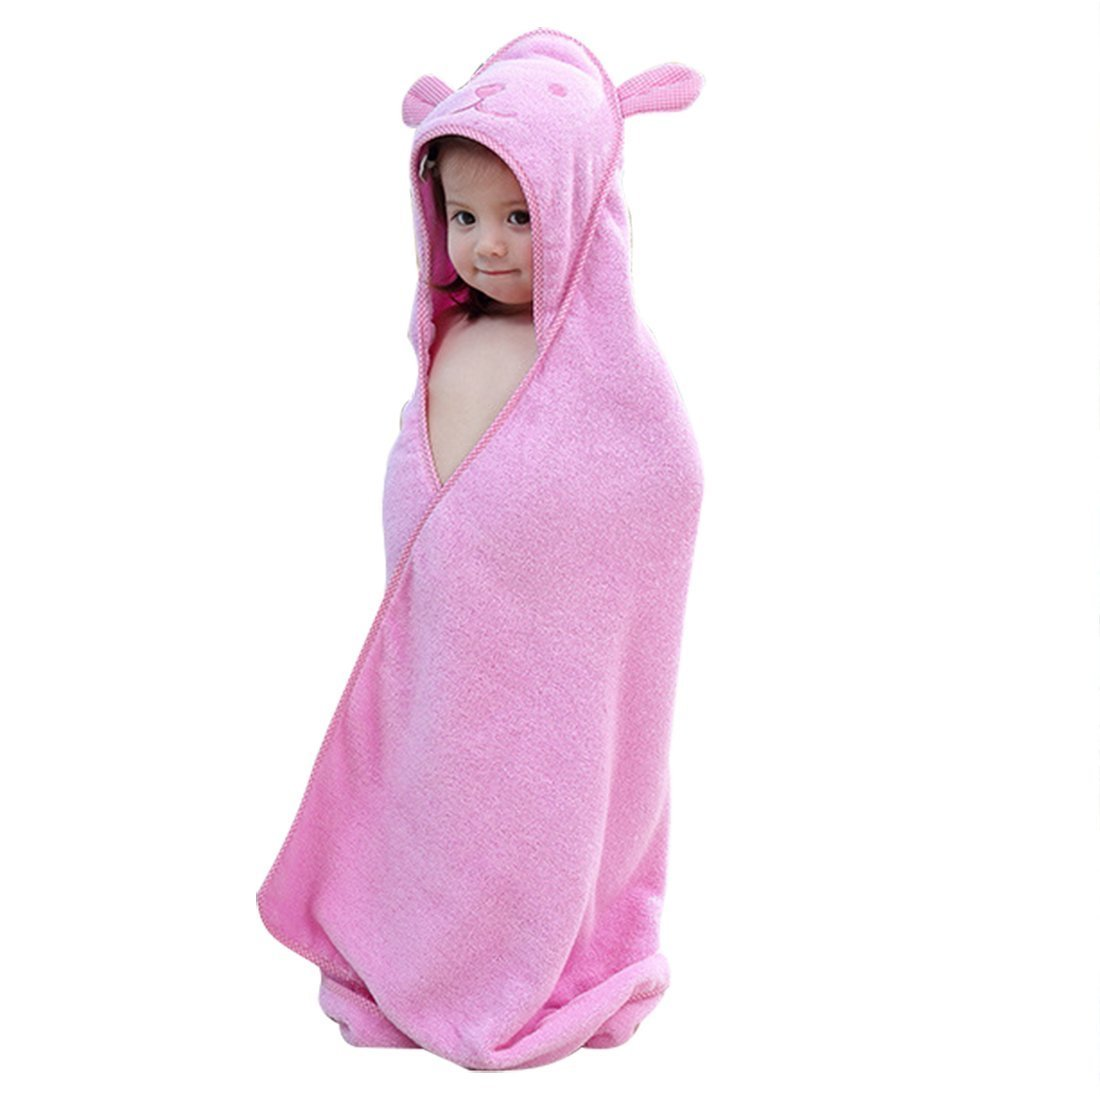 Baby Hooded Towel with Bear Ear- Soft and Thick 100% Cotton Bath Set for Girls, Boys, Infant ad Toddler, Good Choice for Baby Shower Gift … (Pink)